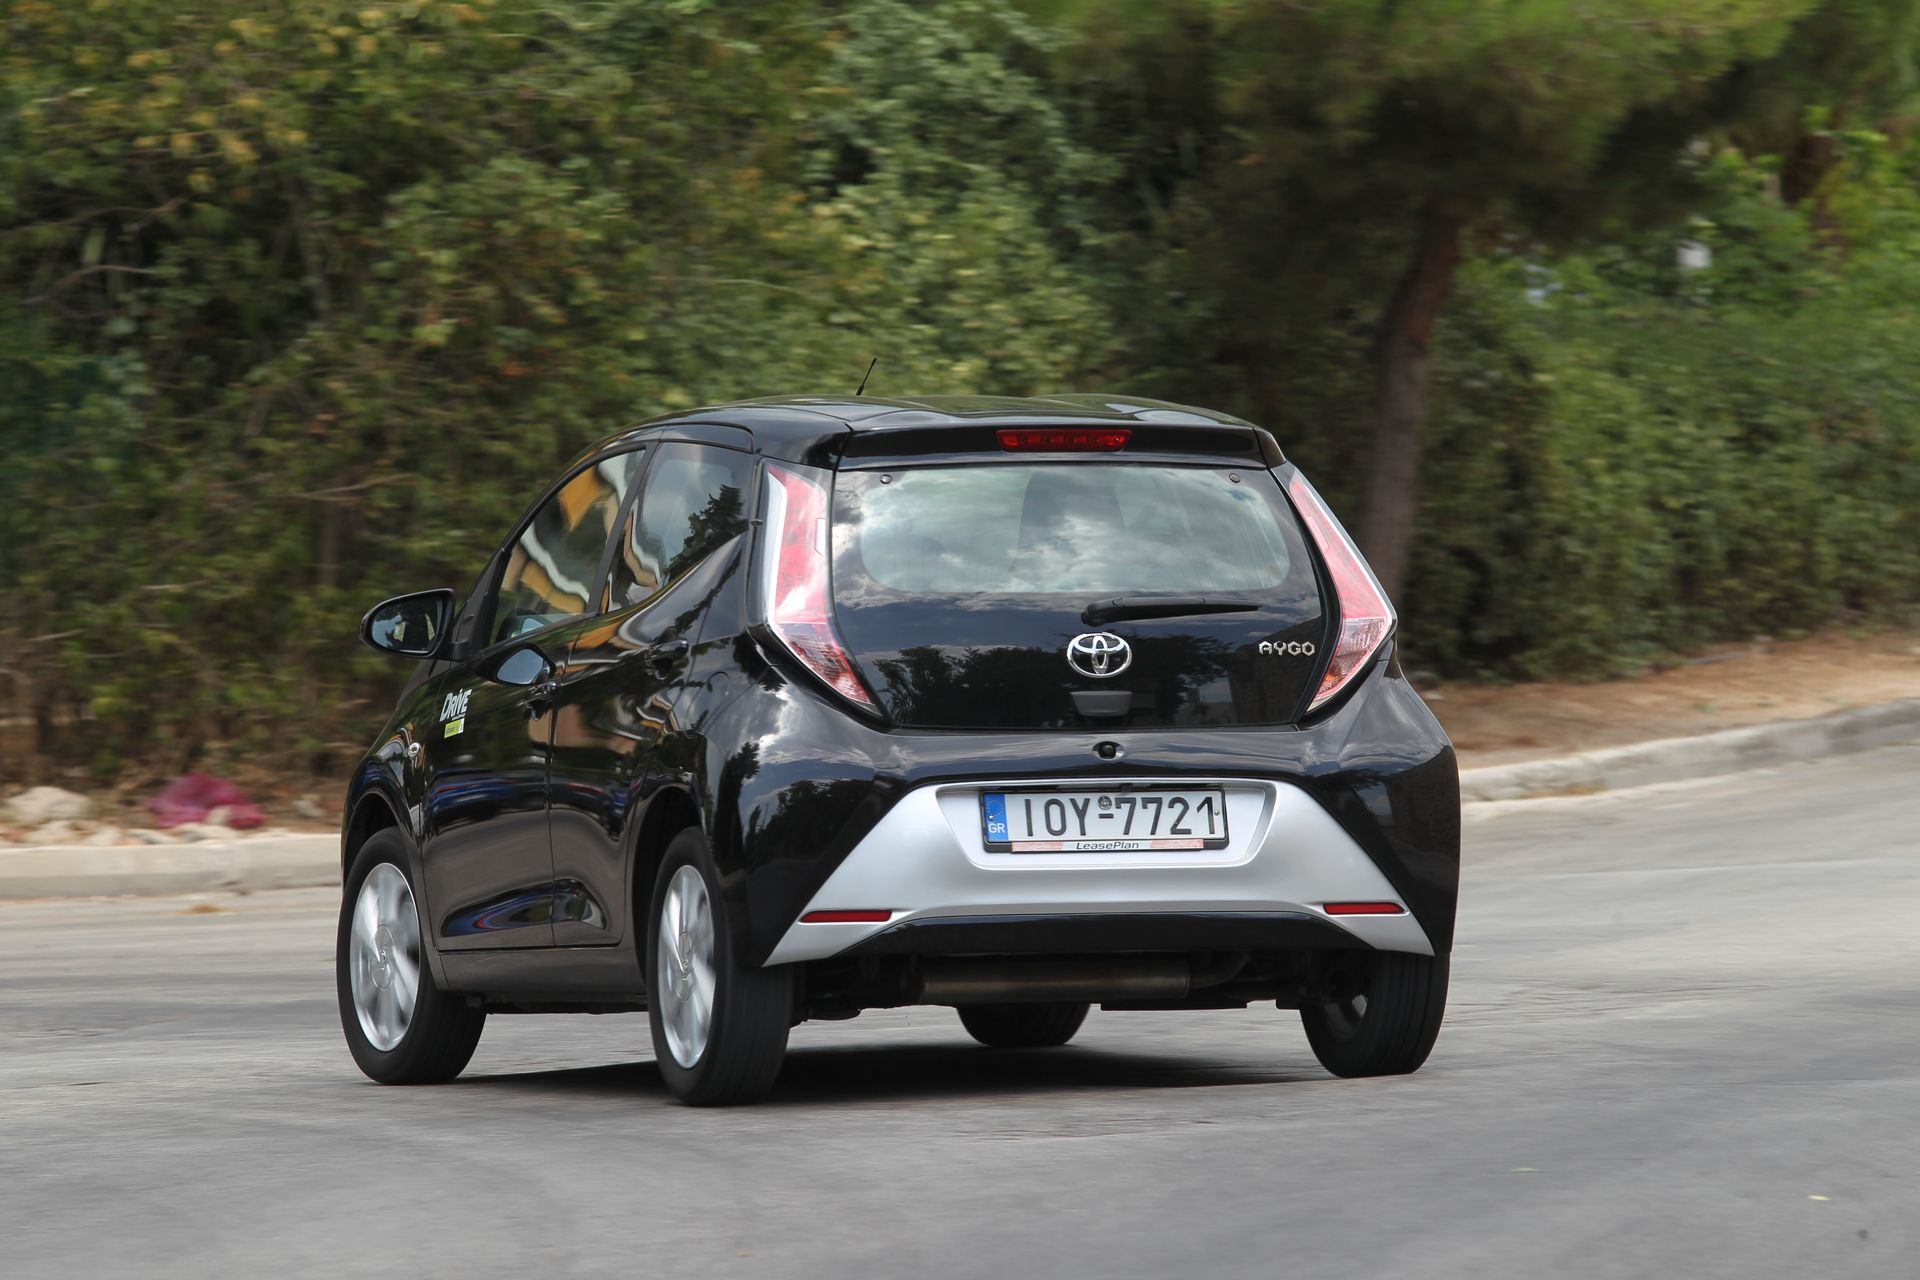 Toyota Aygo Used2Drive 3